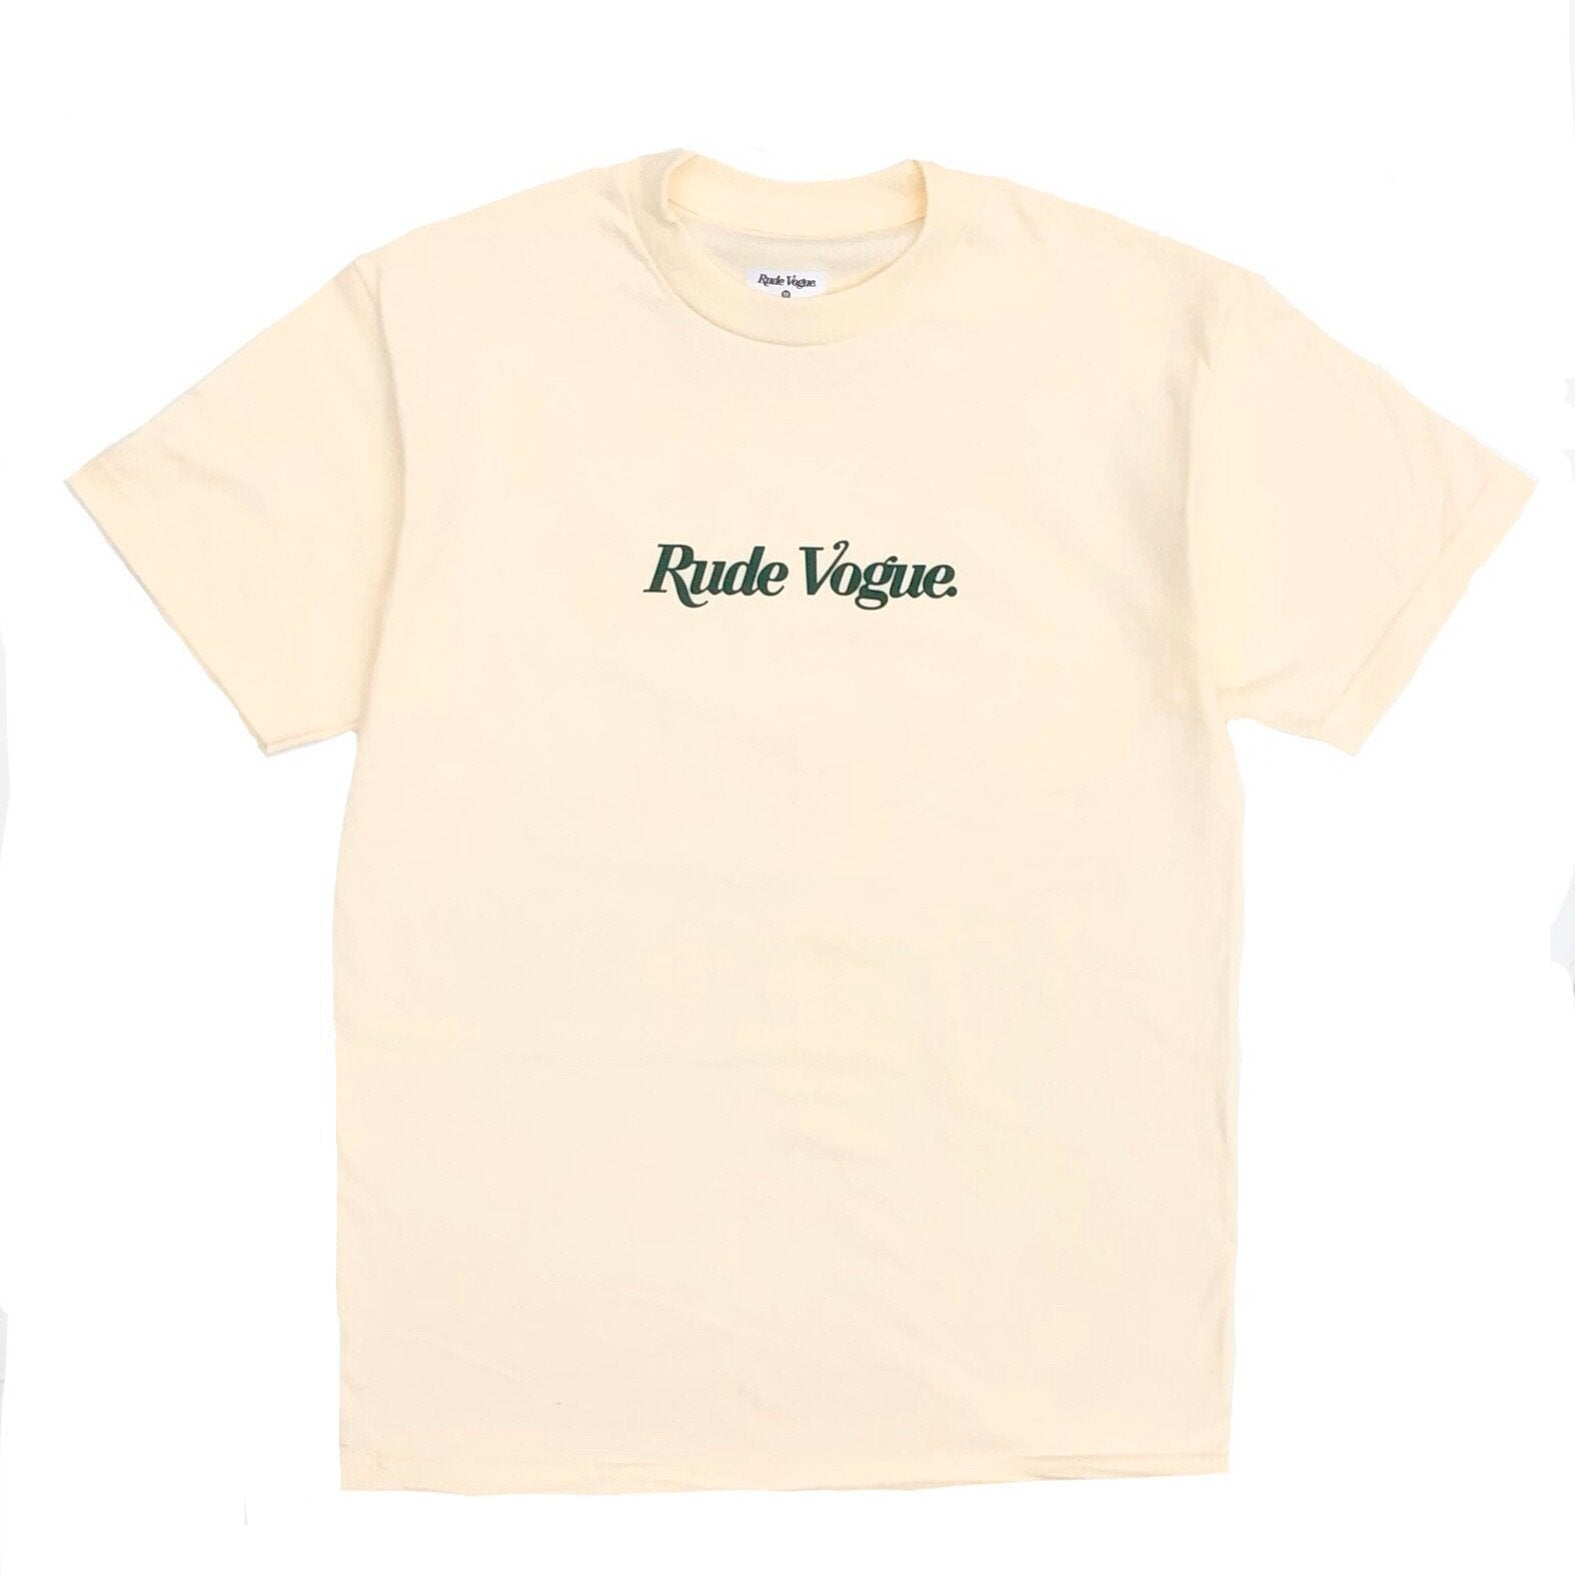 RUDE VOGUE M'S T-SHIRTS RUDE VOGUE T-SHIRT - CREAM/FOREST GREEN